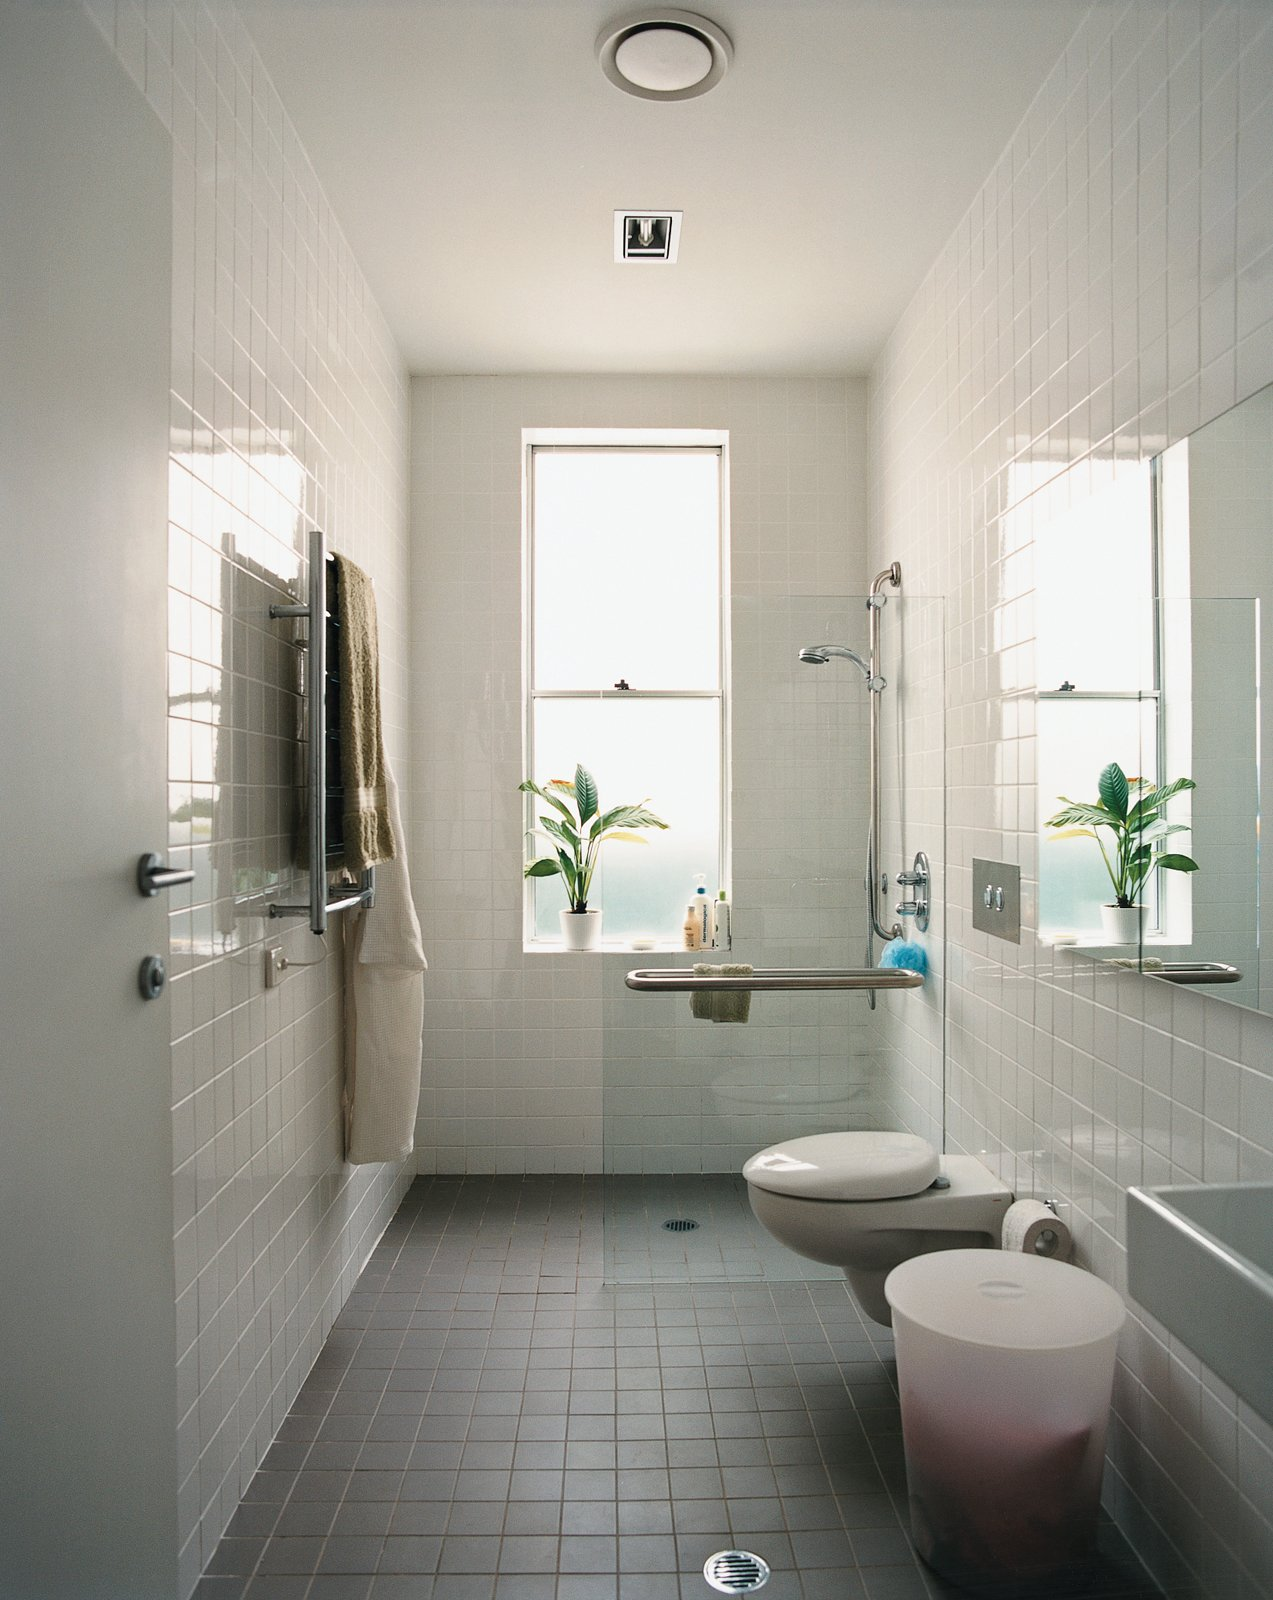 The bathroom's width and reinforced handrails accommodate Wansbrough's needs.  Bathroom